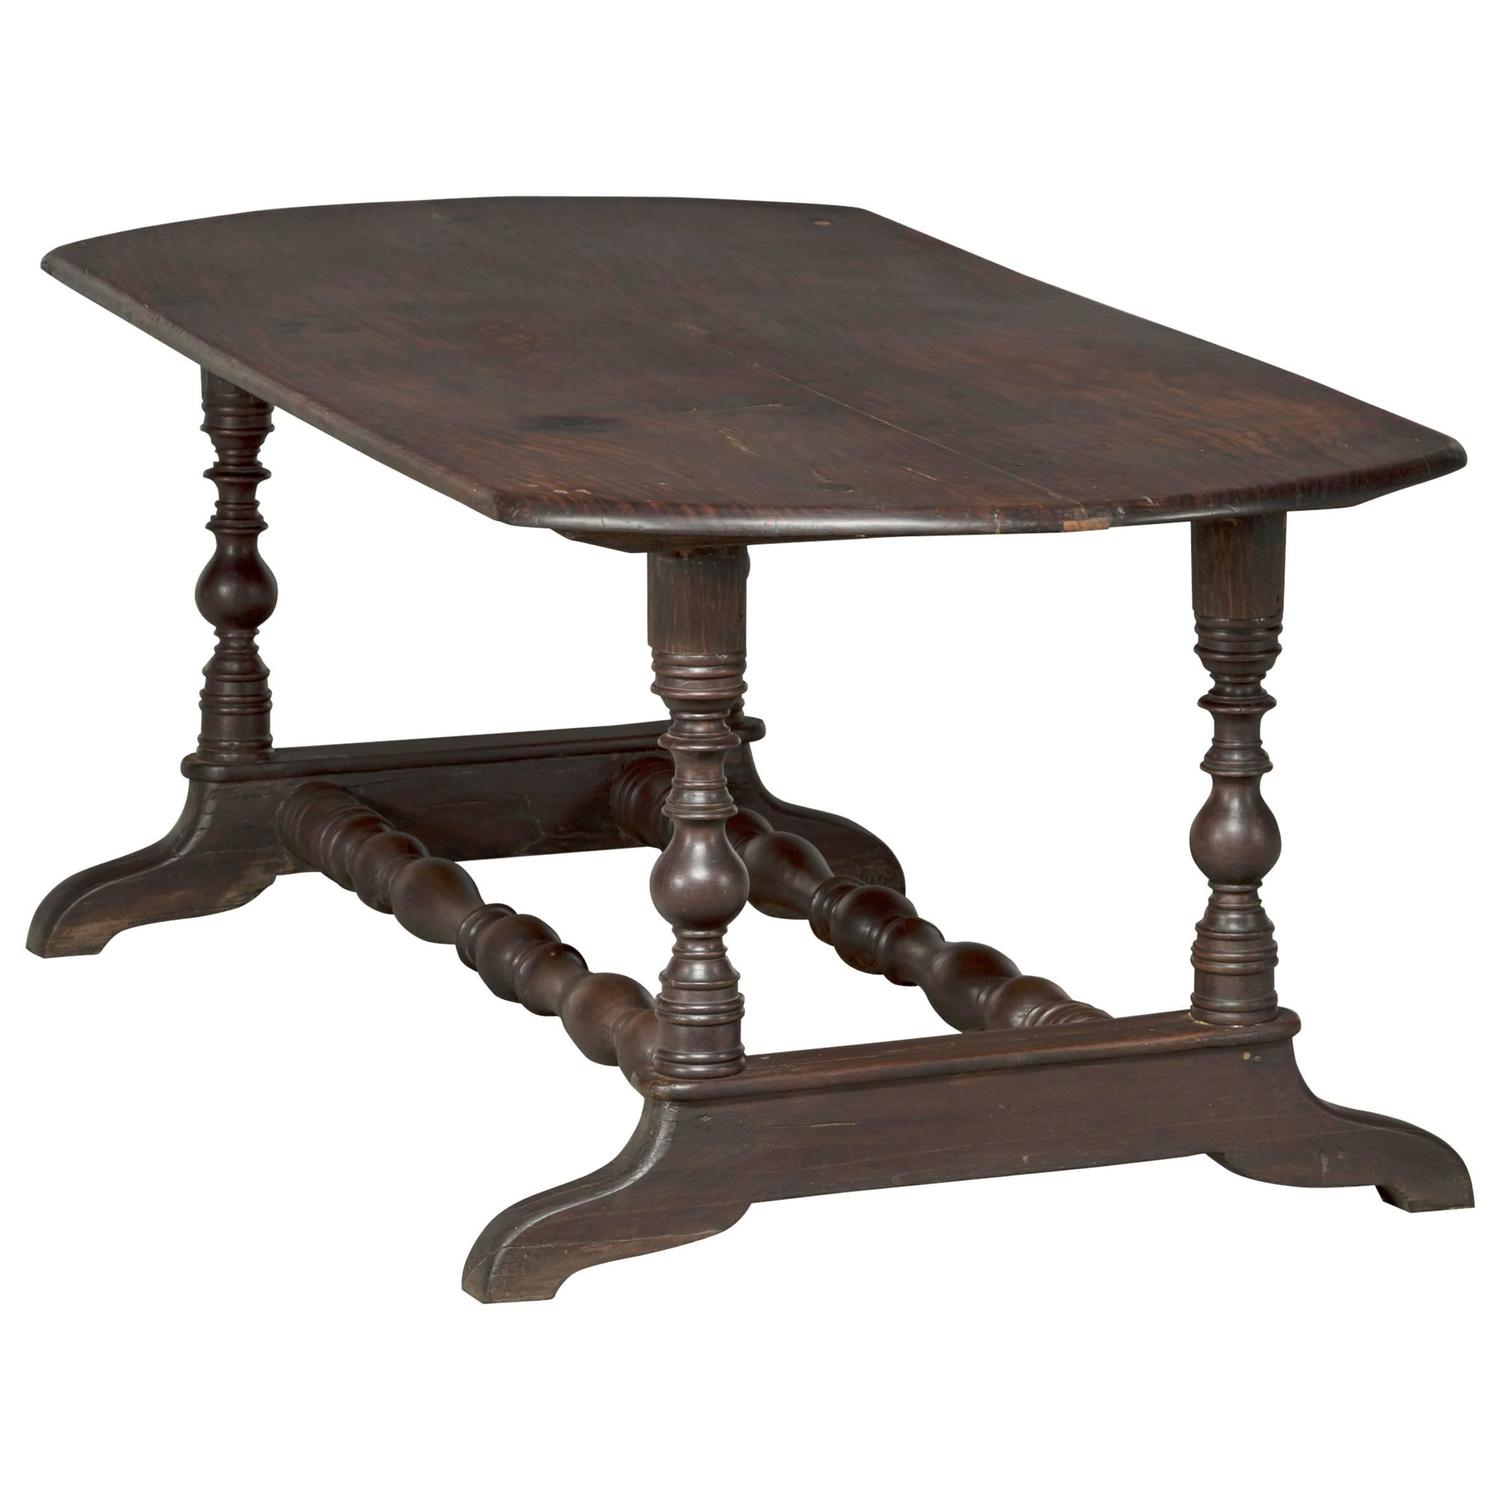 dining table also narra furniture philippines as well dining table